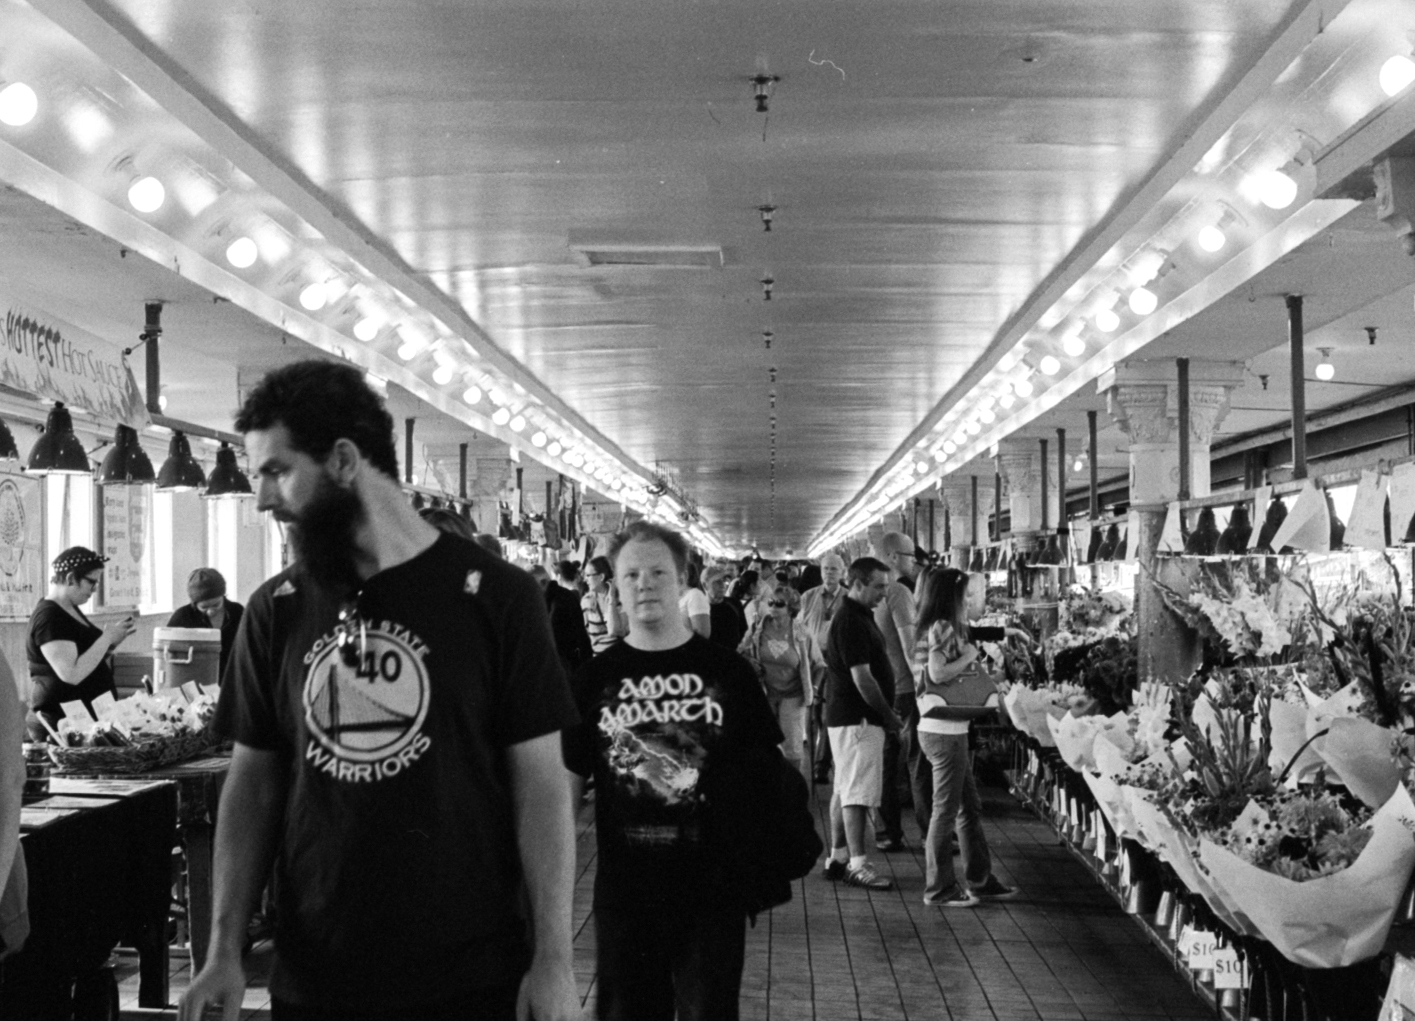 Pike Place Market, Seattle, WA. August 2013.